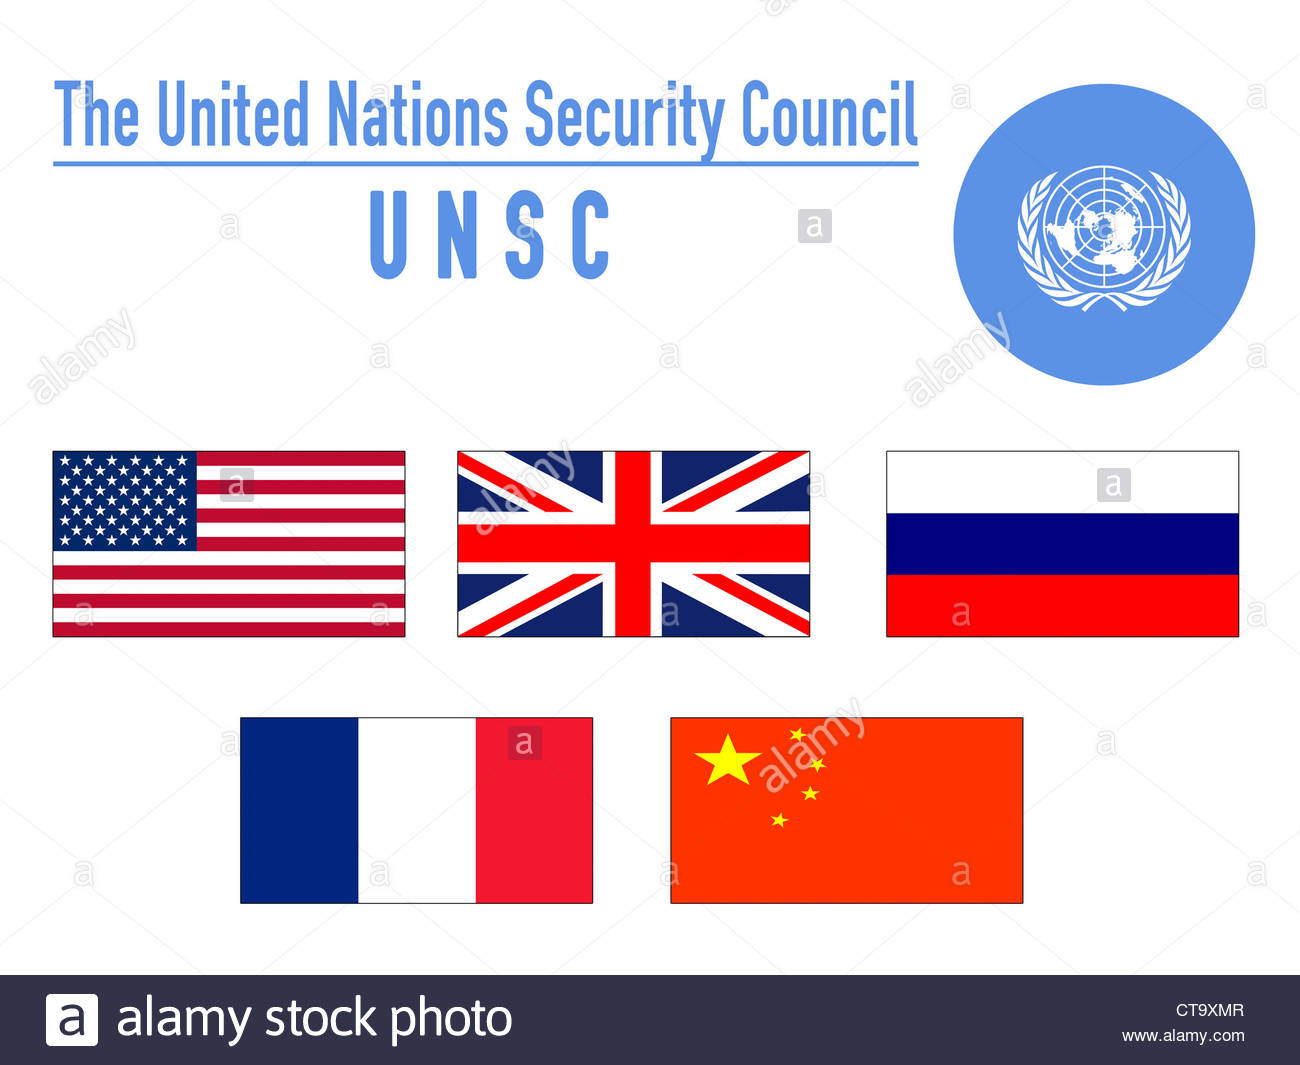 The United Nations Security Council Unsc Stock Photo